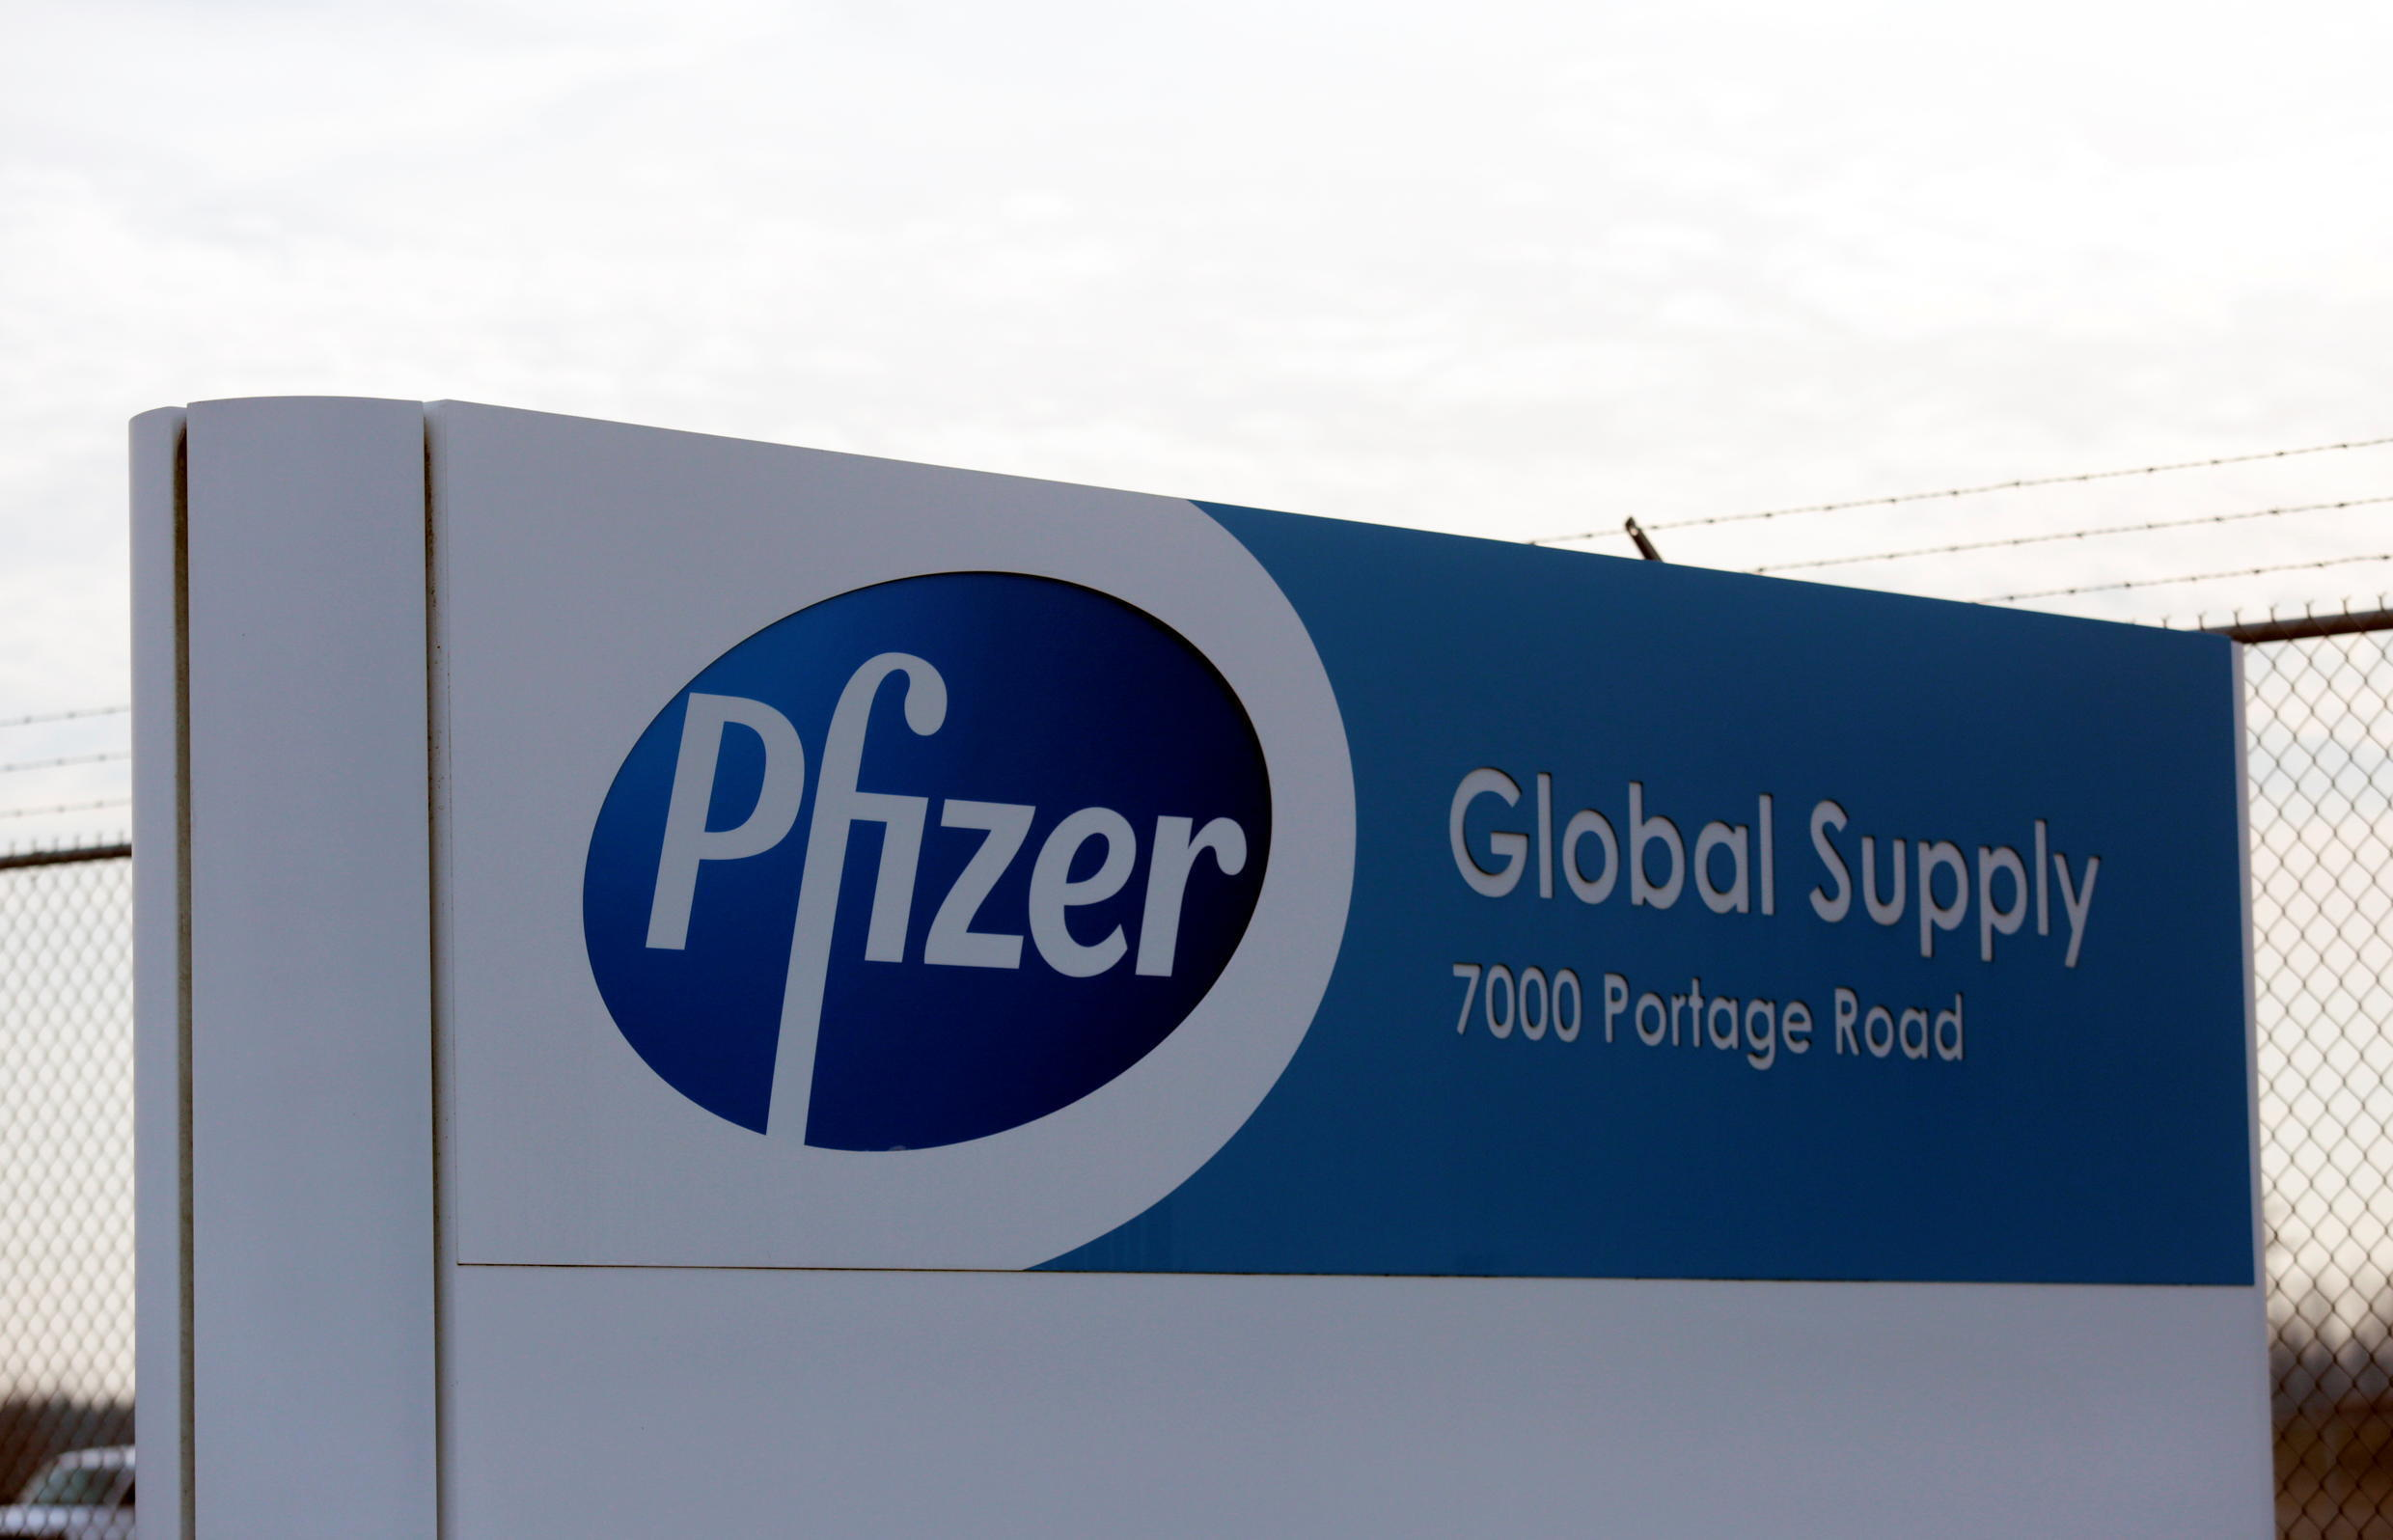 The Pfizer Global Supply manufacturing plant is seen in Portage, Michigan, U.S., December 11, 2020.   REUTERS/Rebecca Cook